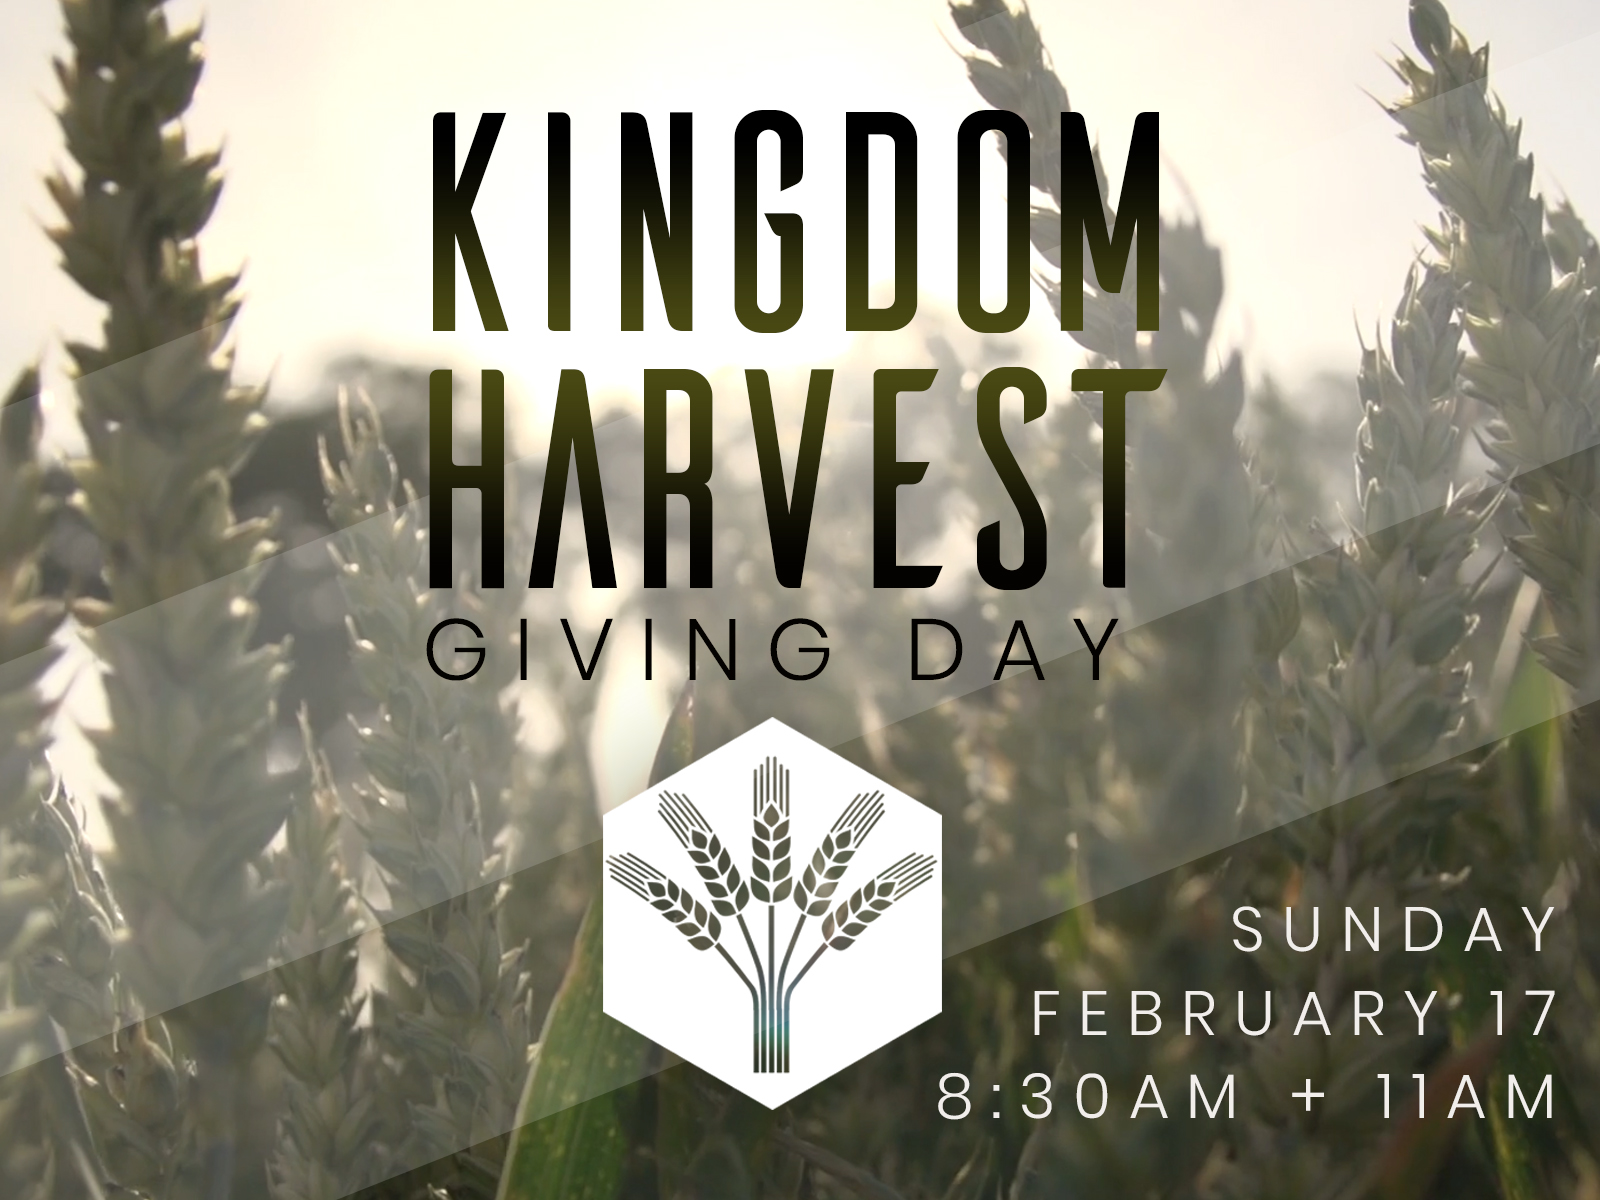 kingdomharvestgivingday_slide.jpg